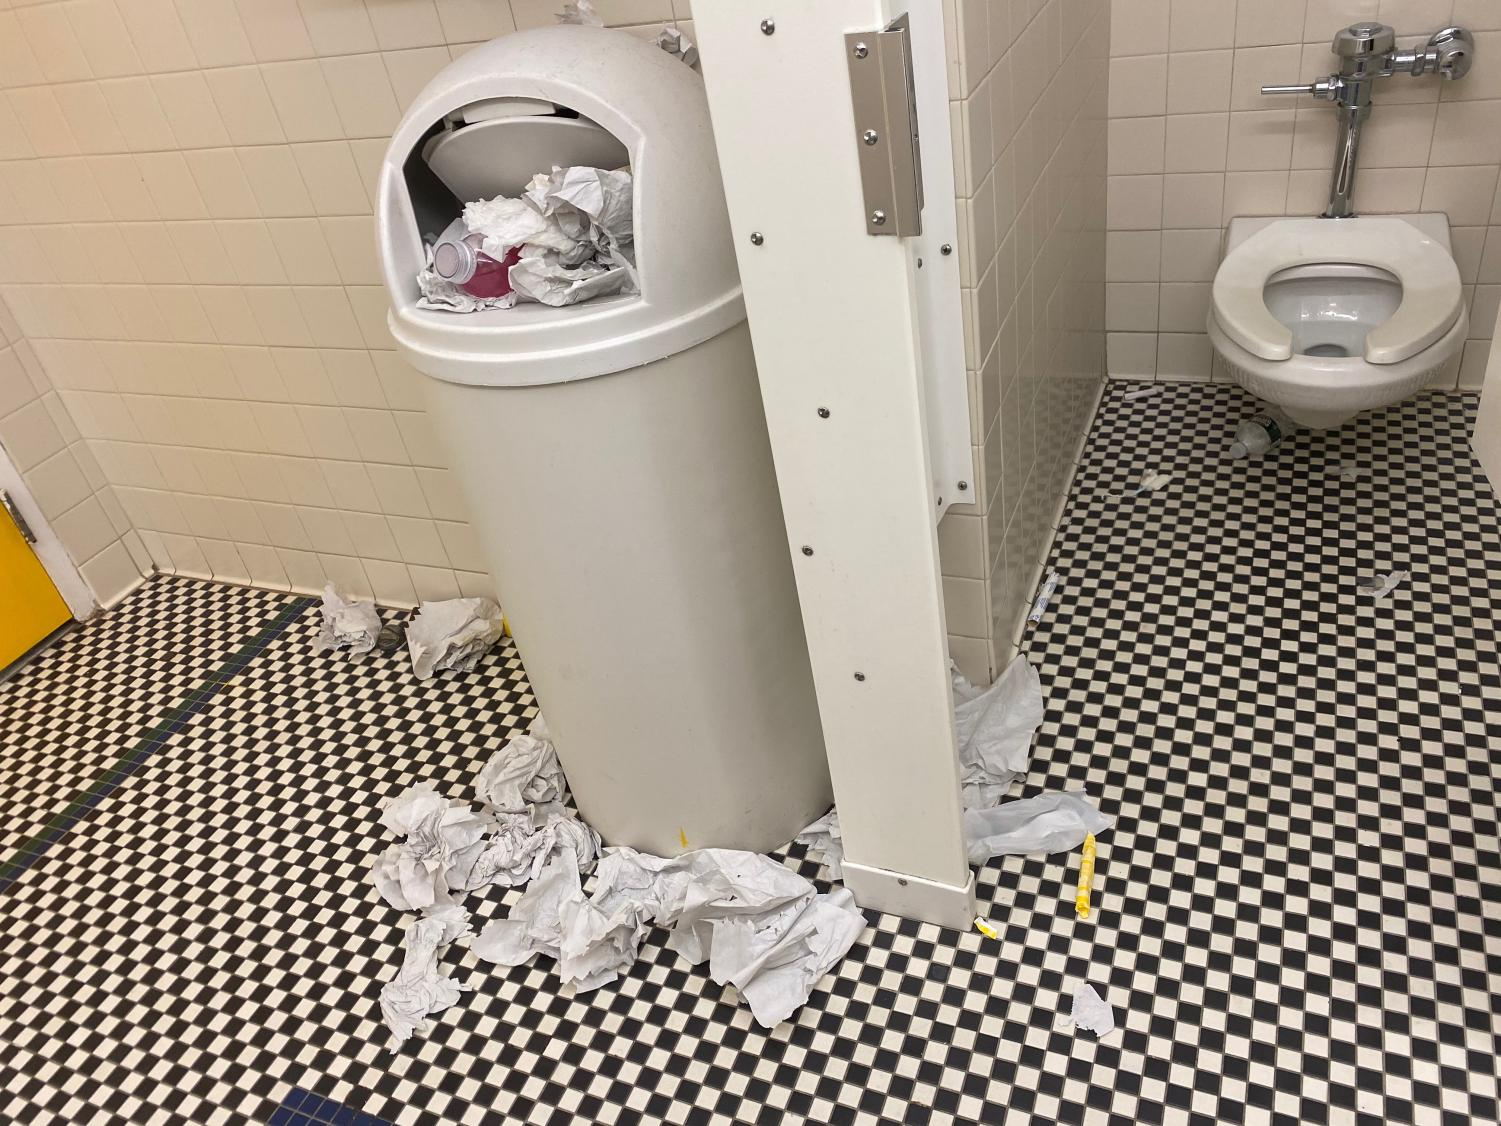 The girls bathroom on the third floor of Martin Hall at the start of the second week of the spring semester. Monday, February 3.